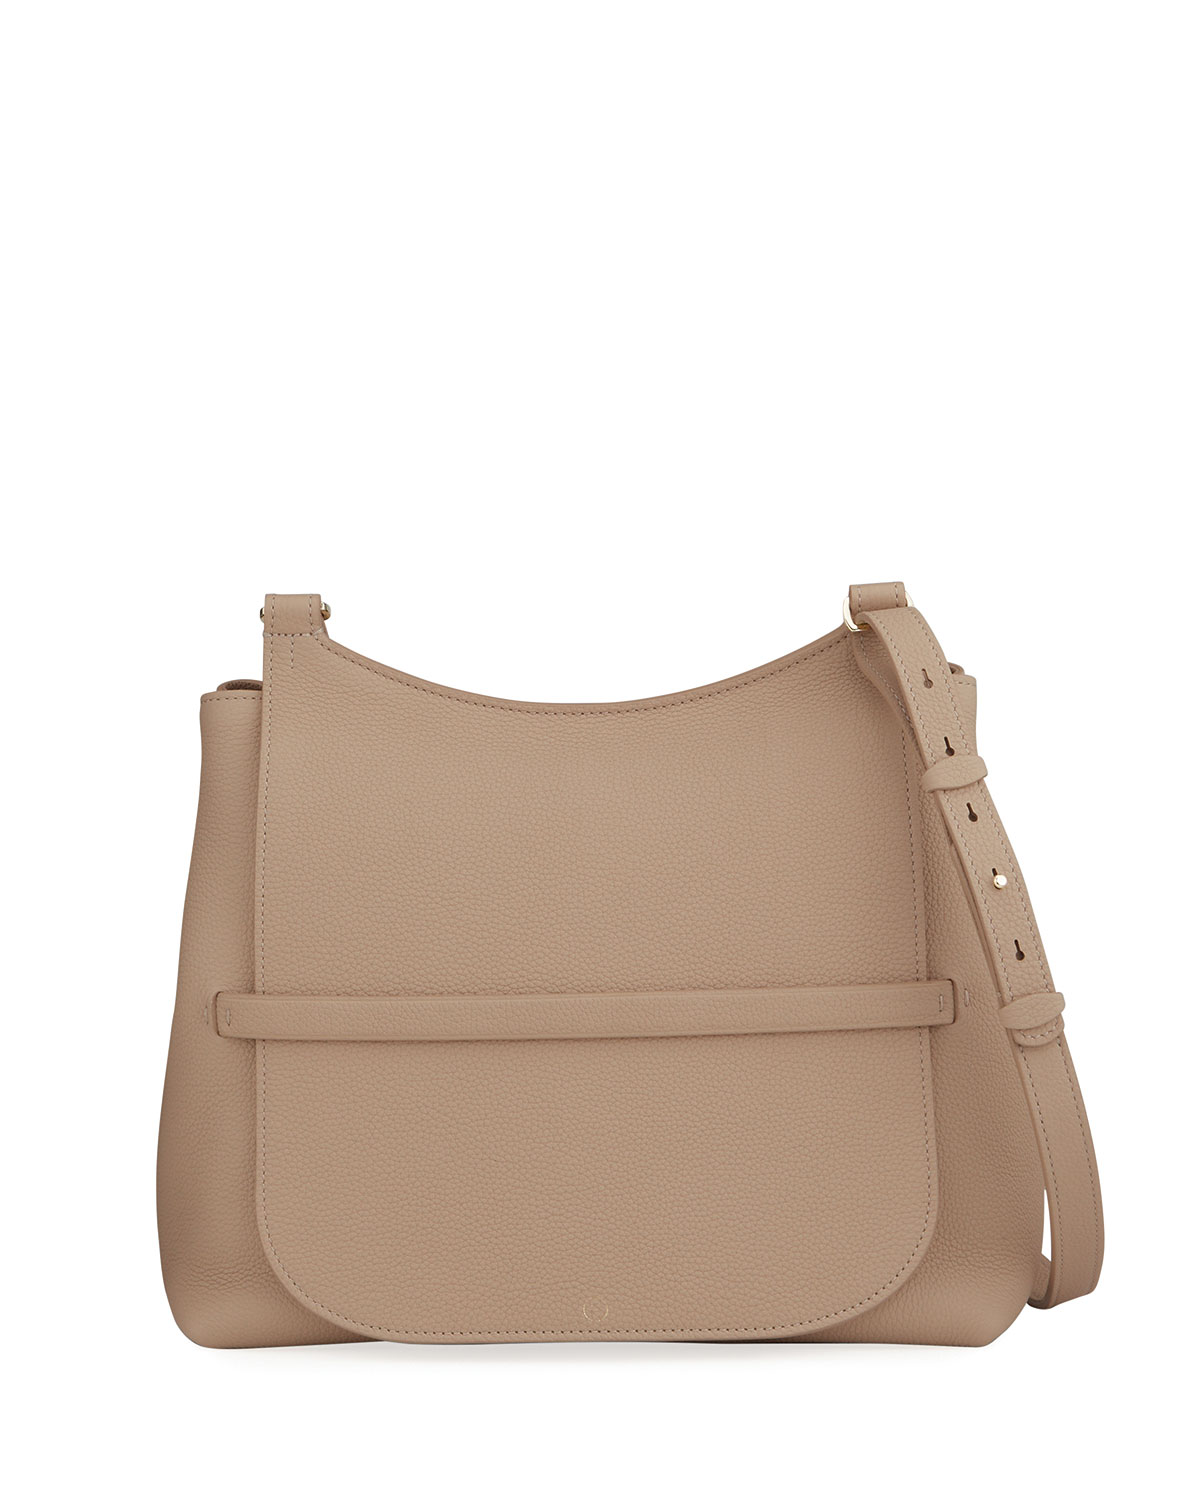 Sideby Pebbled Calfskin Crossbody Bag by The Row